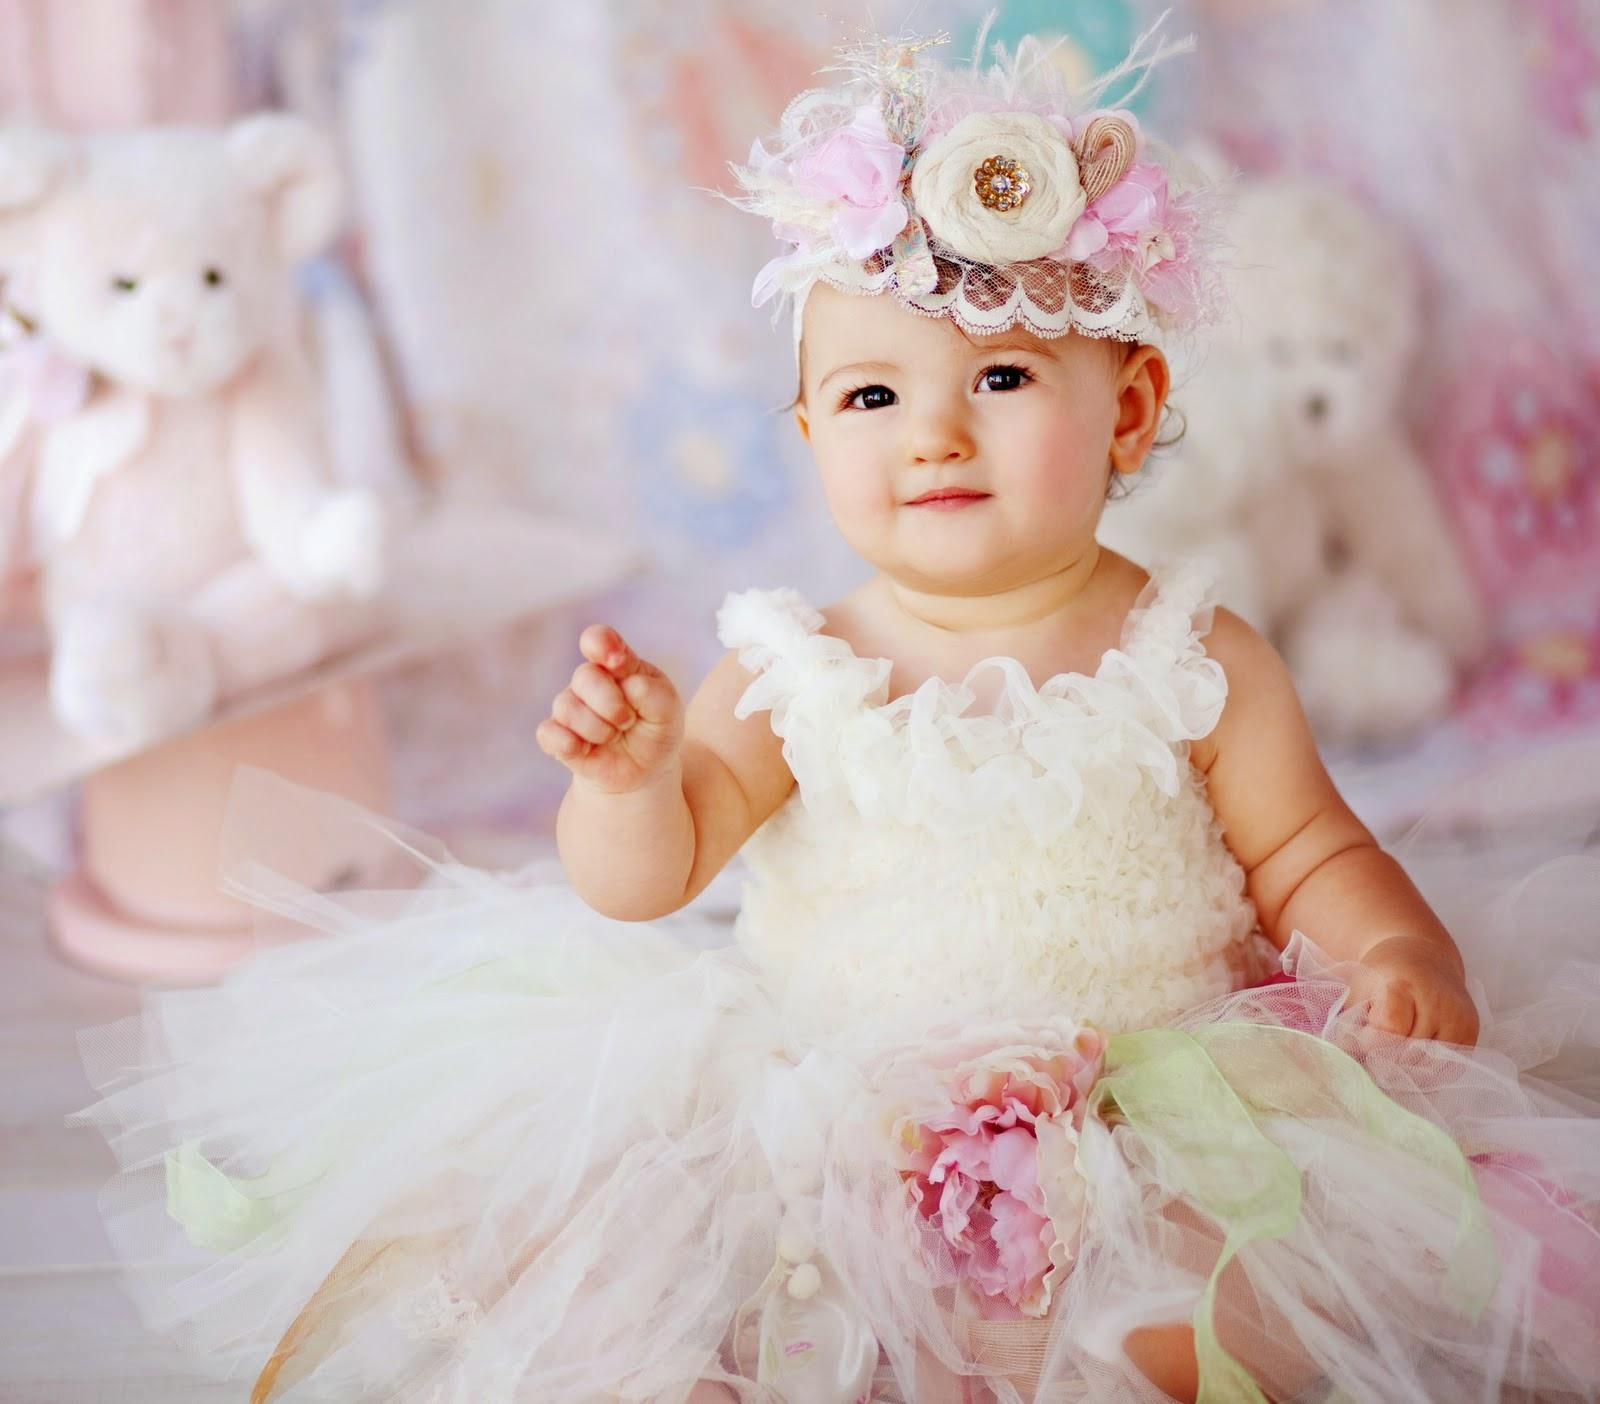 Baby Angels Wallpapers Wallpaper Cave